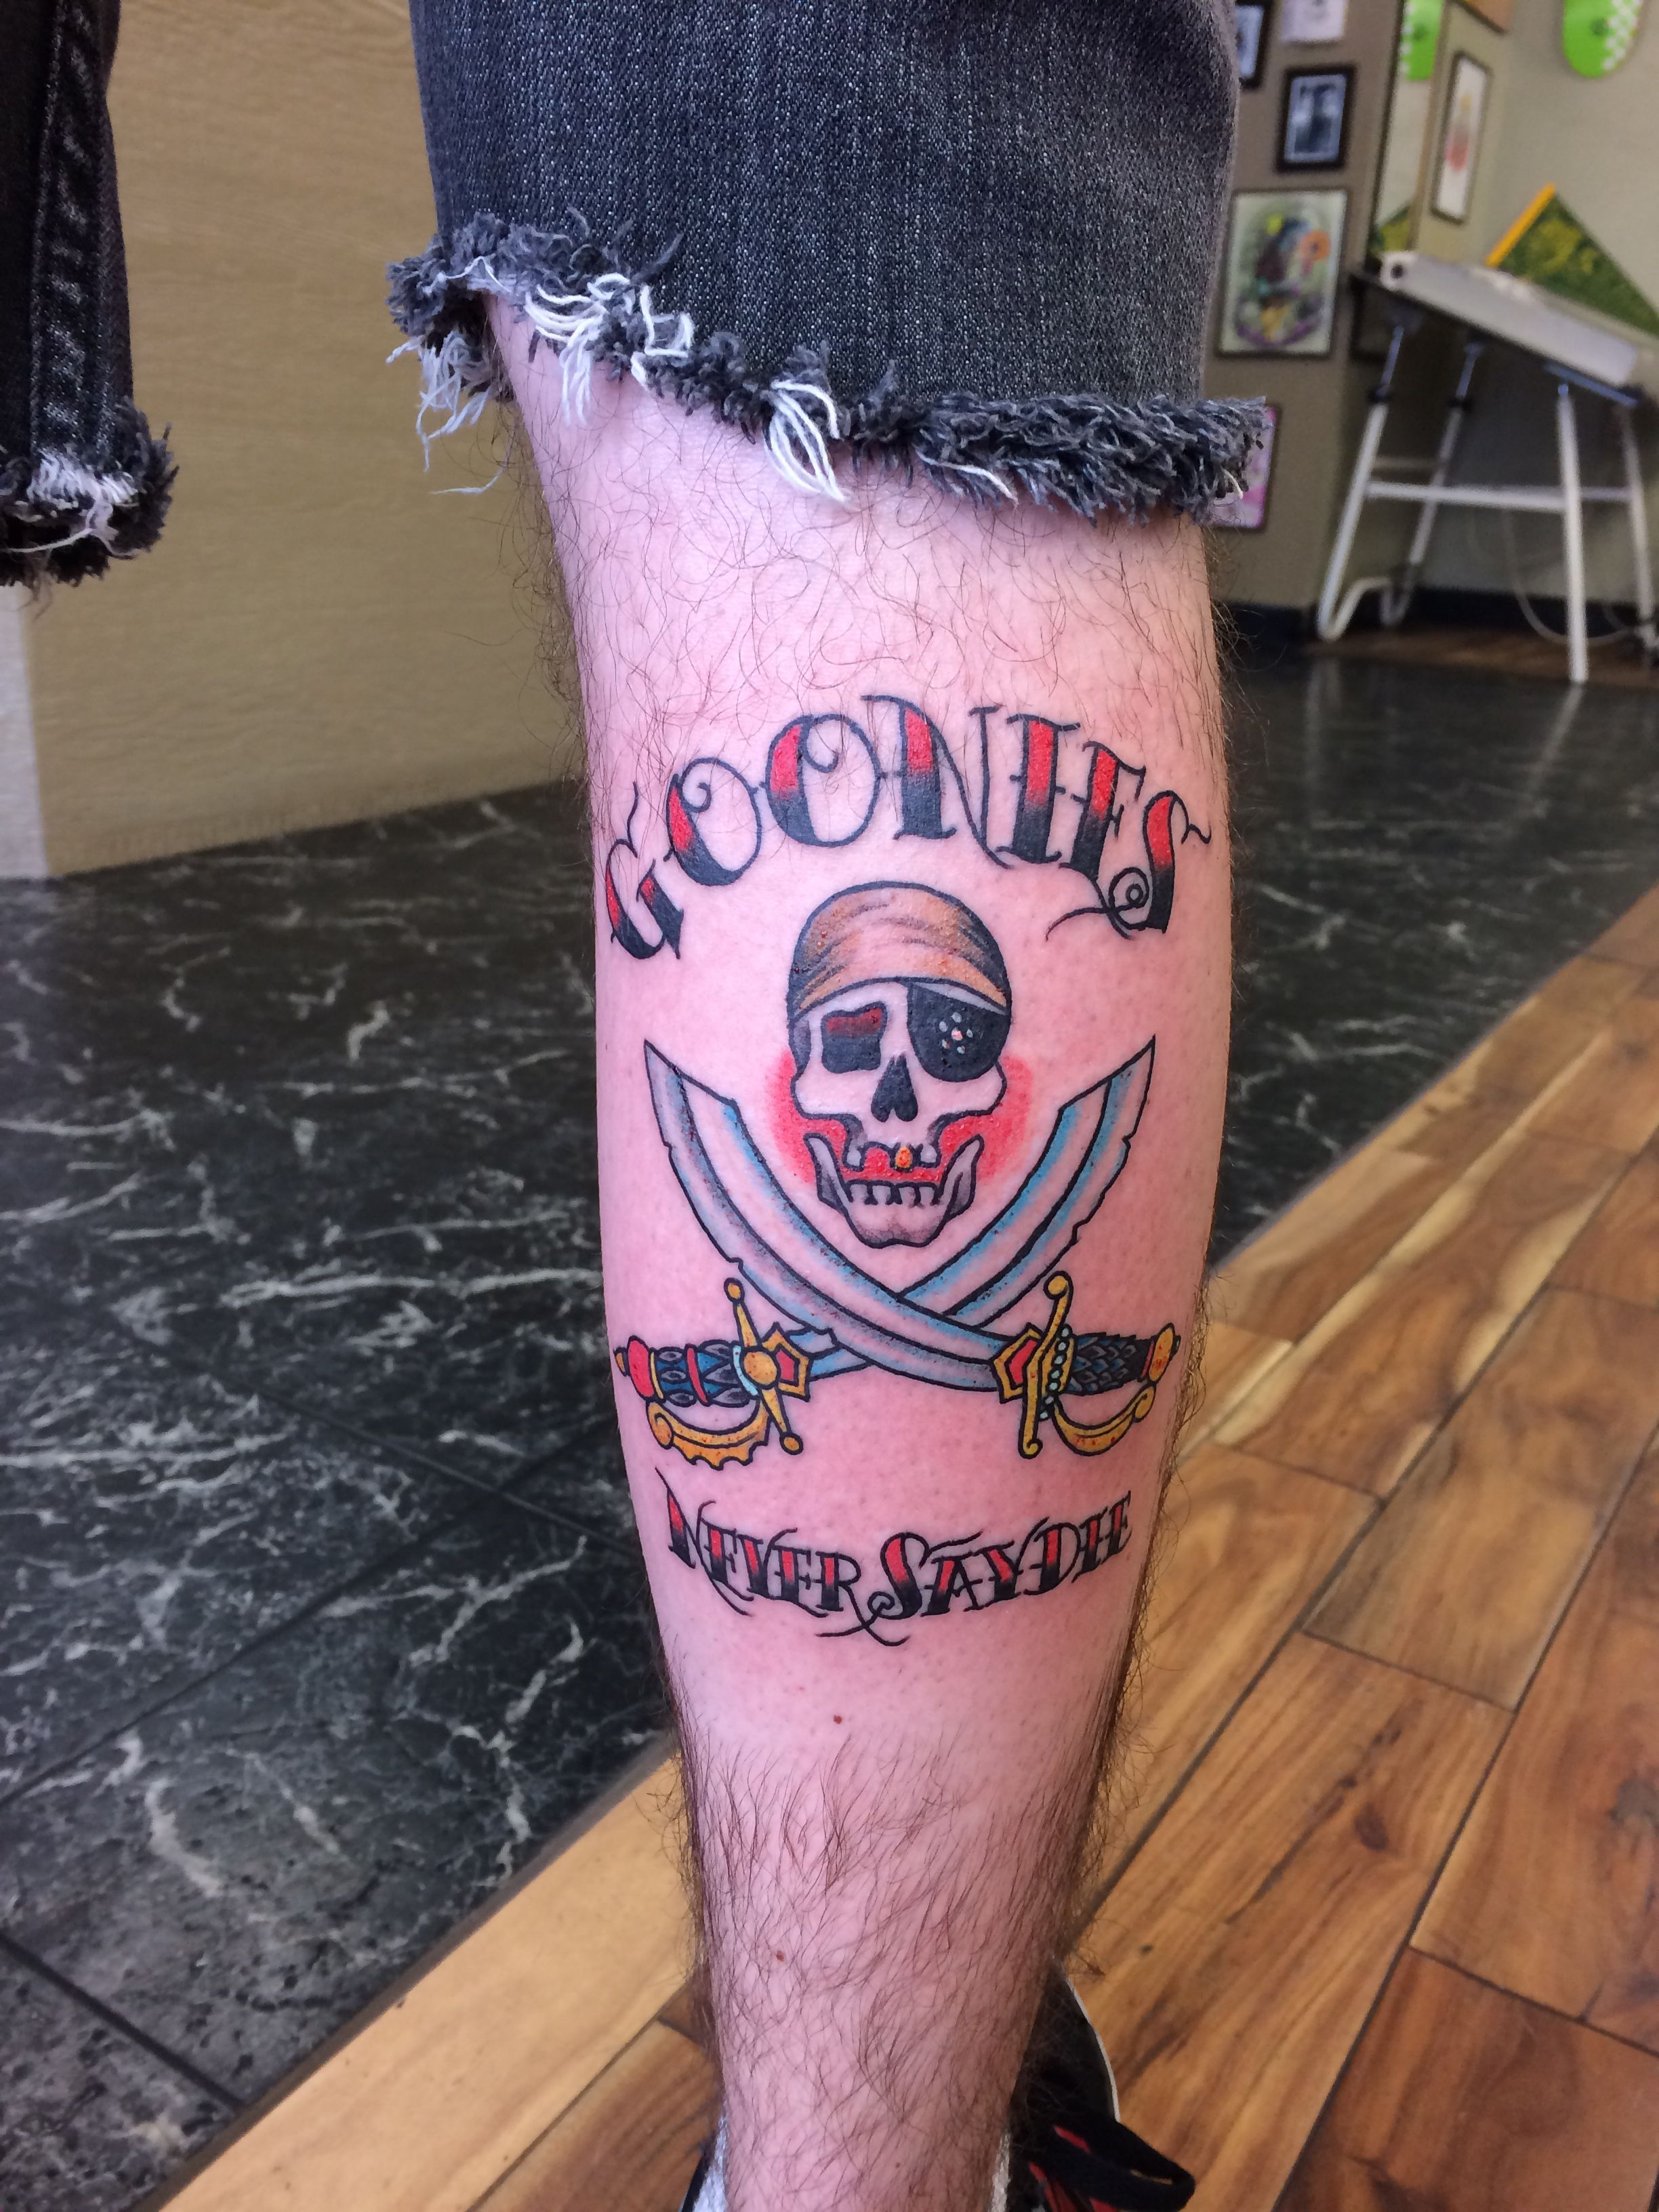 60 Goonies Tattoo Designs For Men – Never Say Die Ink Ideas 60 Goonies Tattoo Designs For Men – Never Say Die Ink Ideas new pics